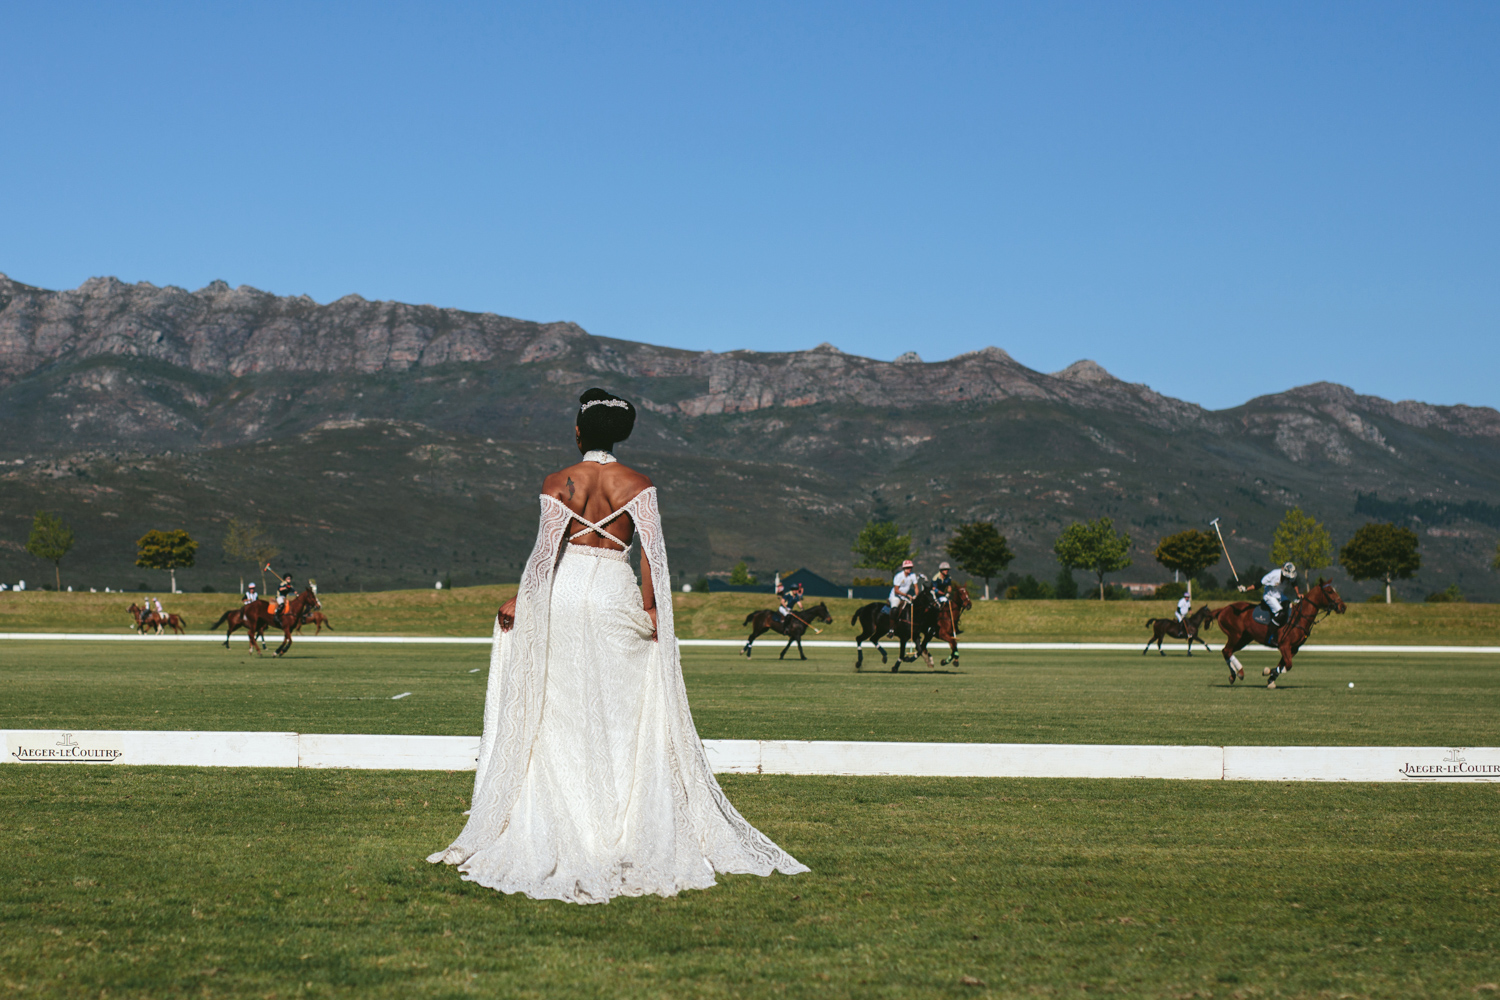 an Image taken by Vividblue of the bride standing next to a polo match at Val de Vie